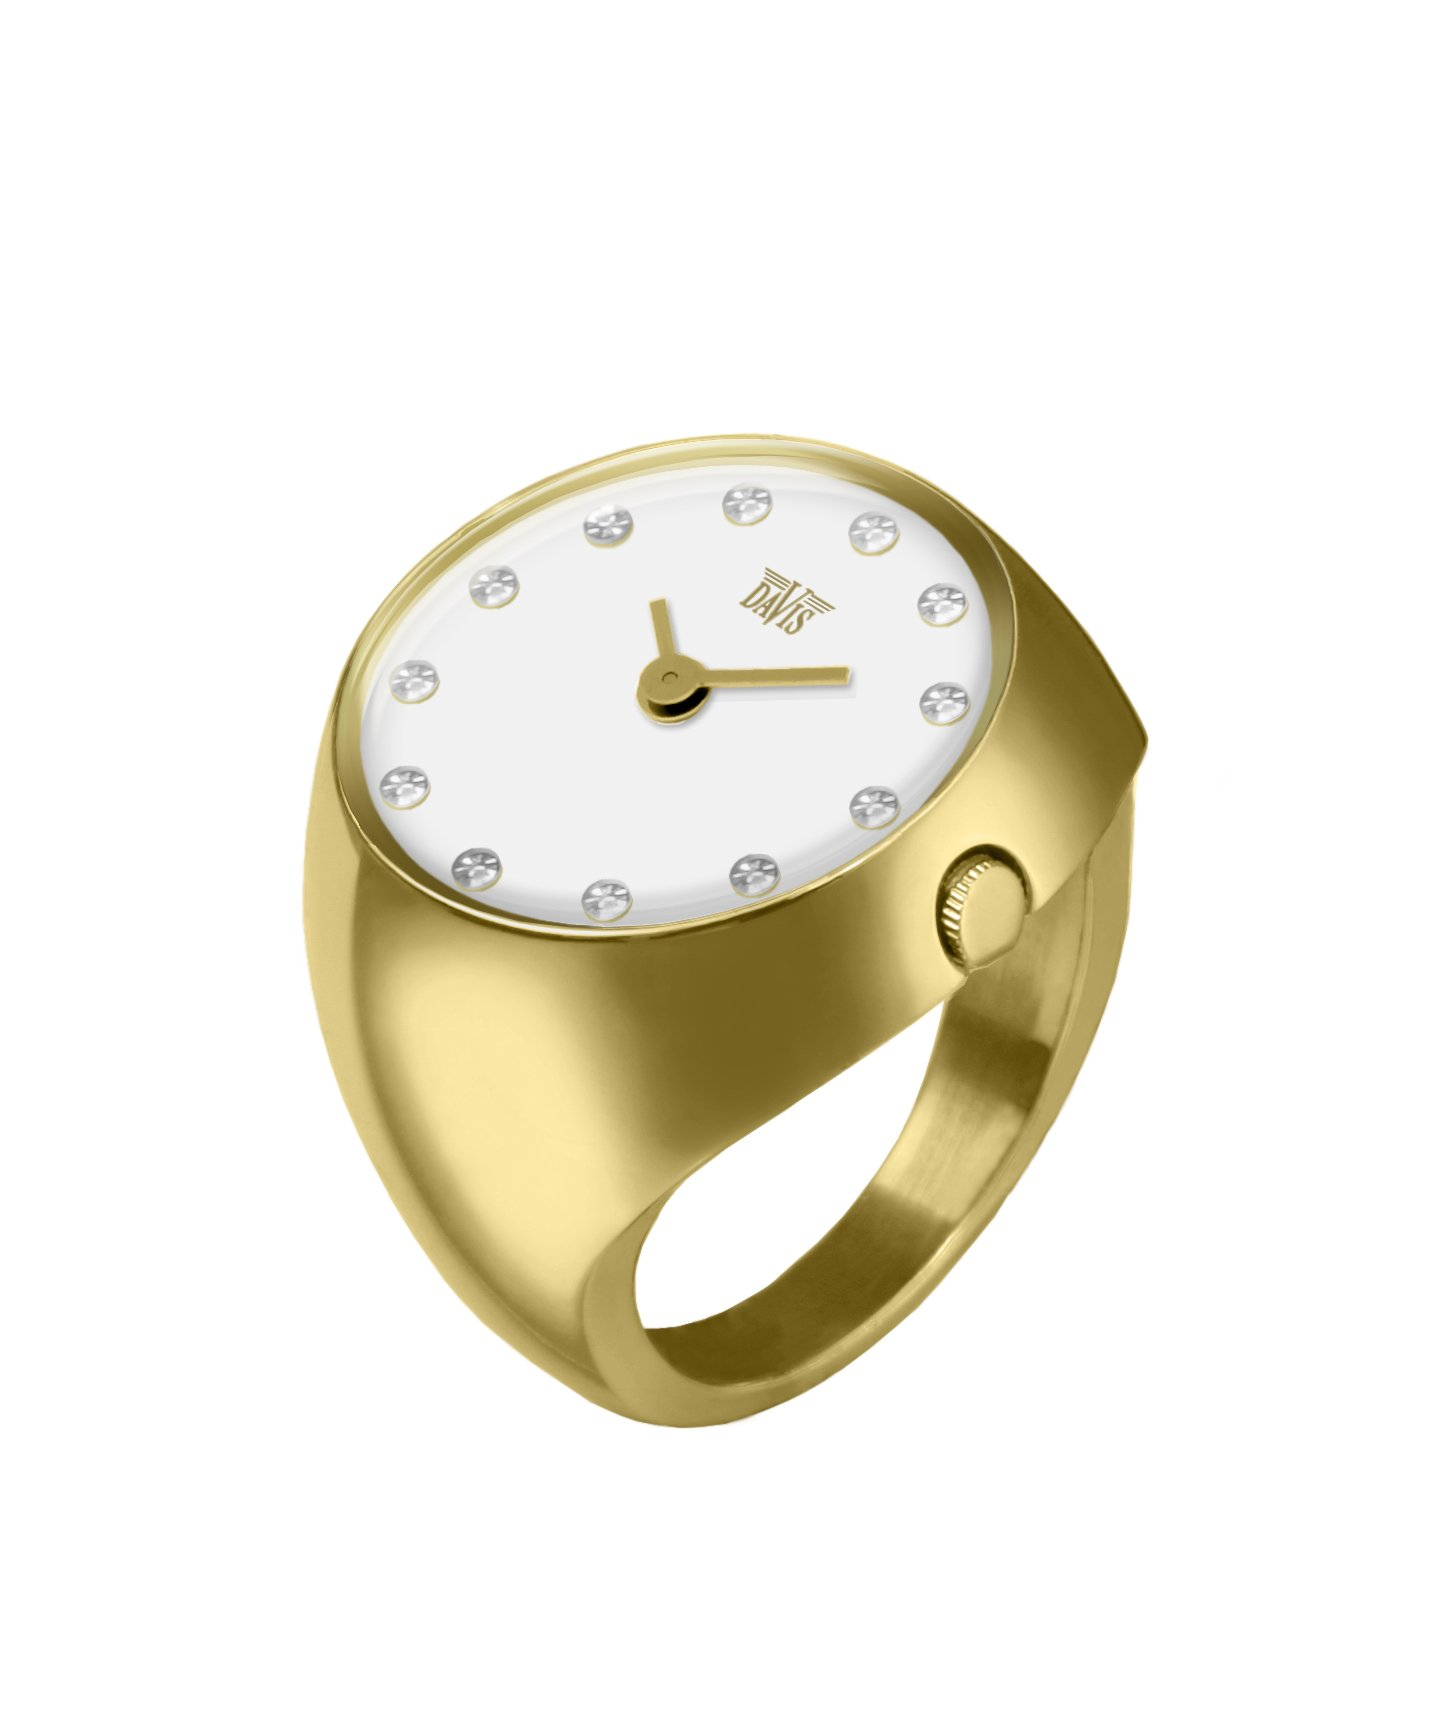 Davis 2016M - Womens Finger Ring Watch Yellow Gold Domed Sapphire Glass White Dial with Swarovski Crystal Markers Size 55